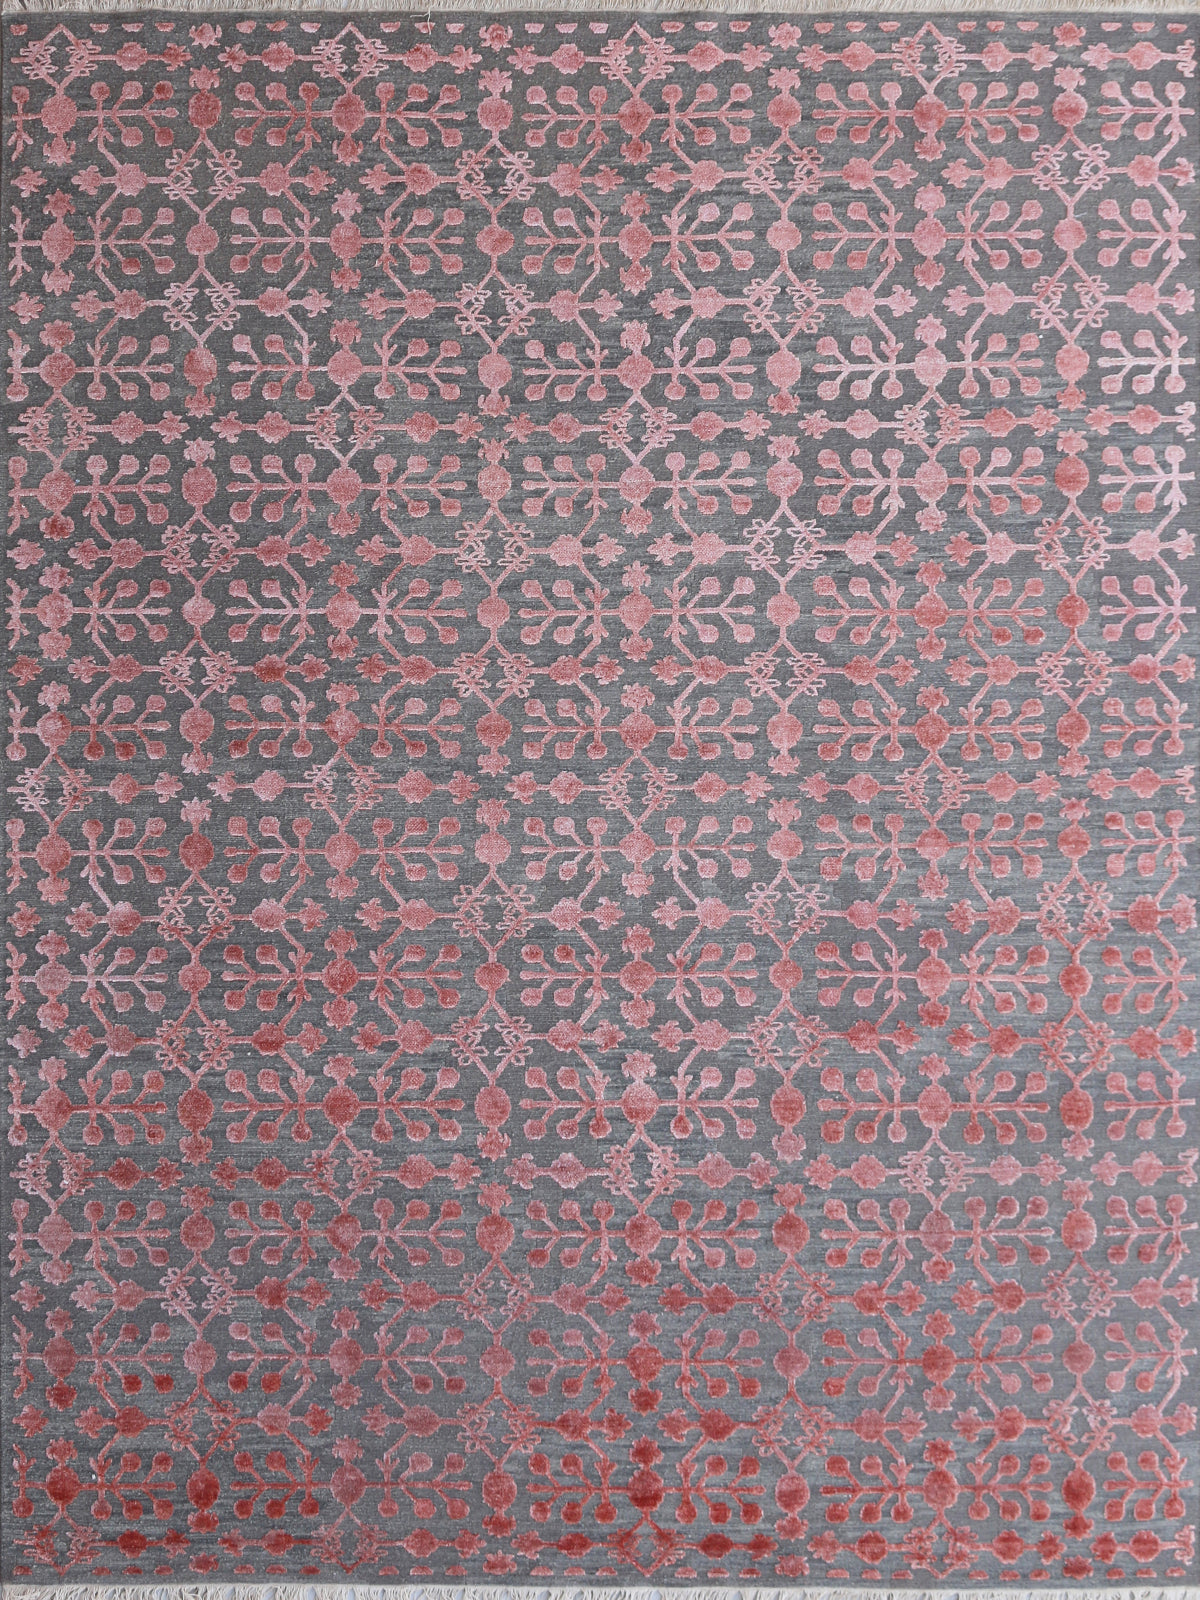 Amer Joy JOY-6 Blush Area Rug main image